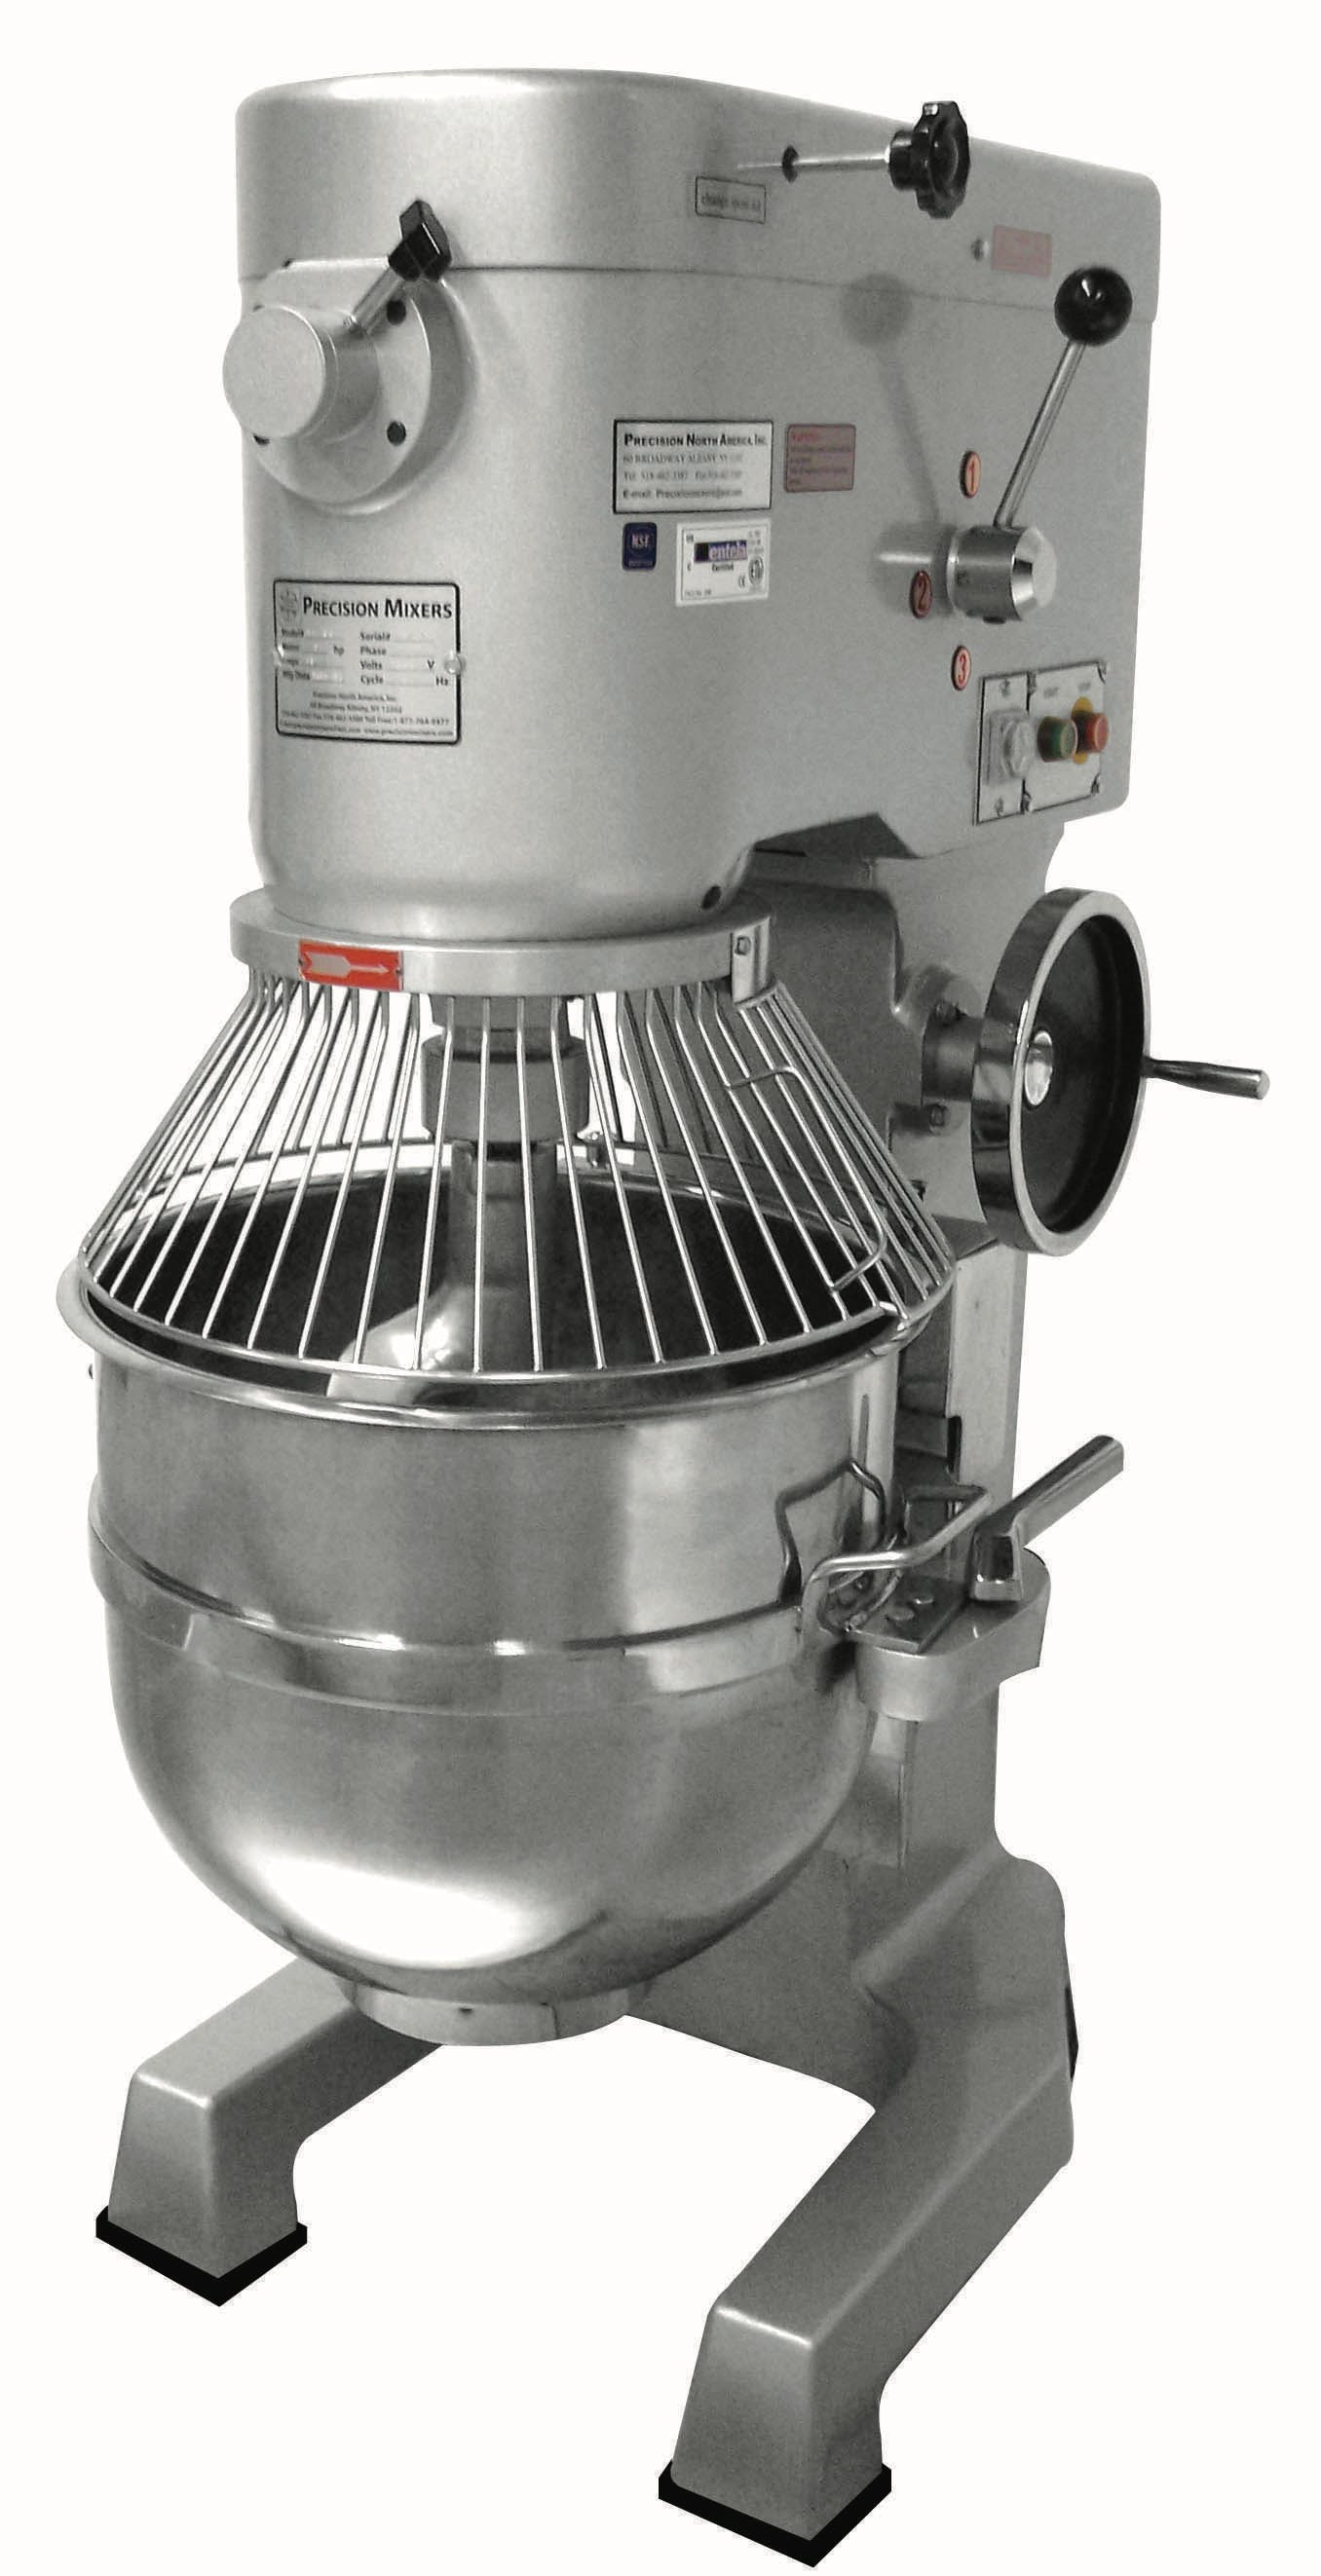 HD-60 Pizza Mixer Mixer sold by Precision North America Food Machinery